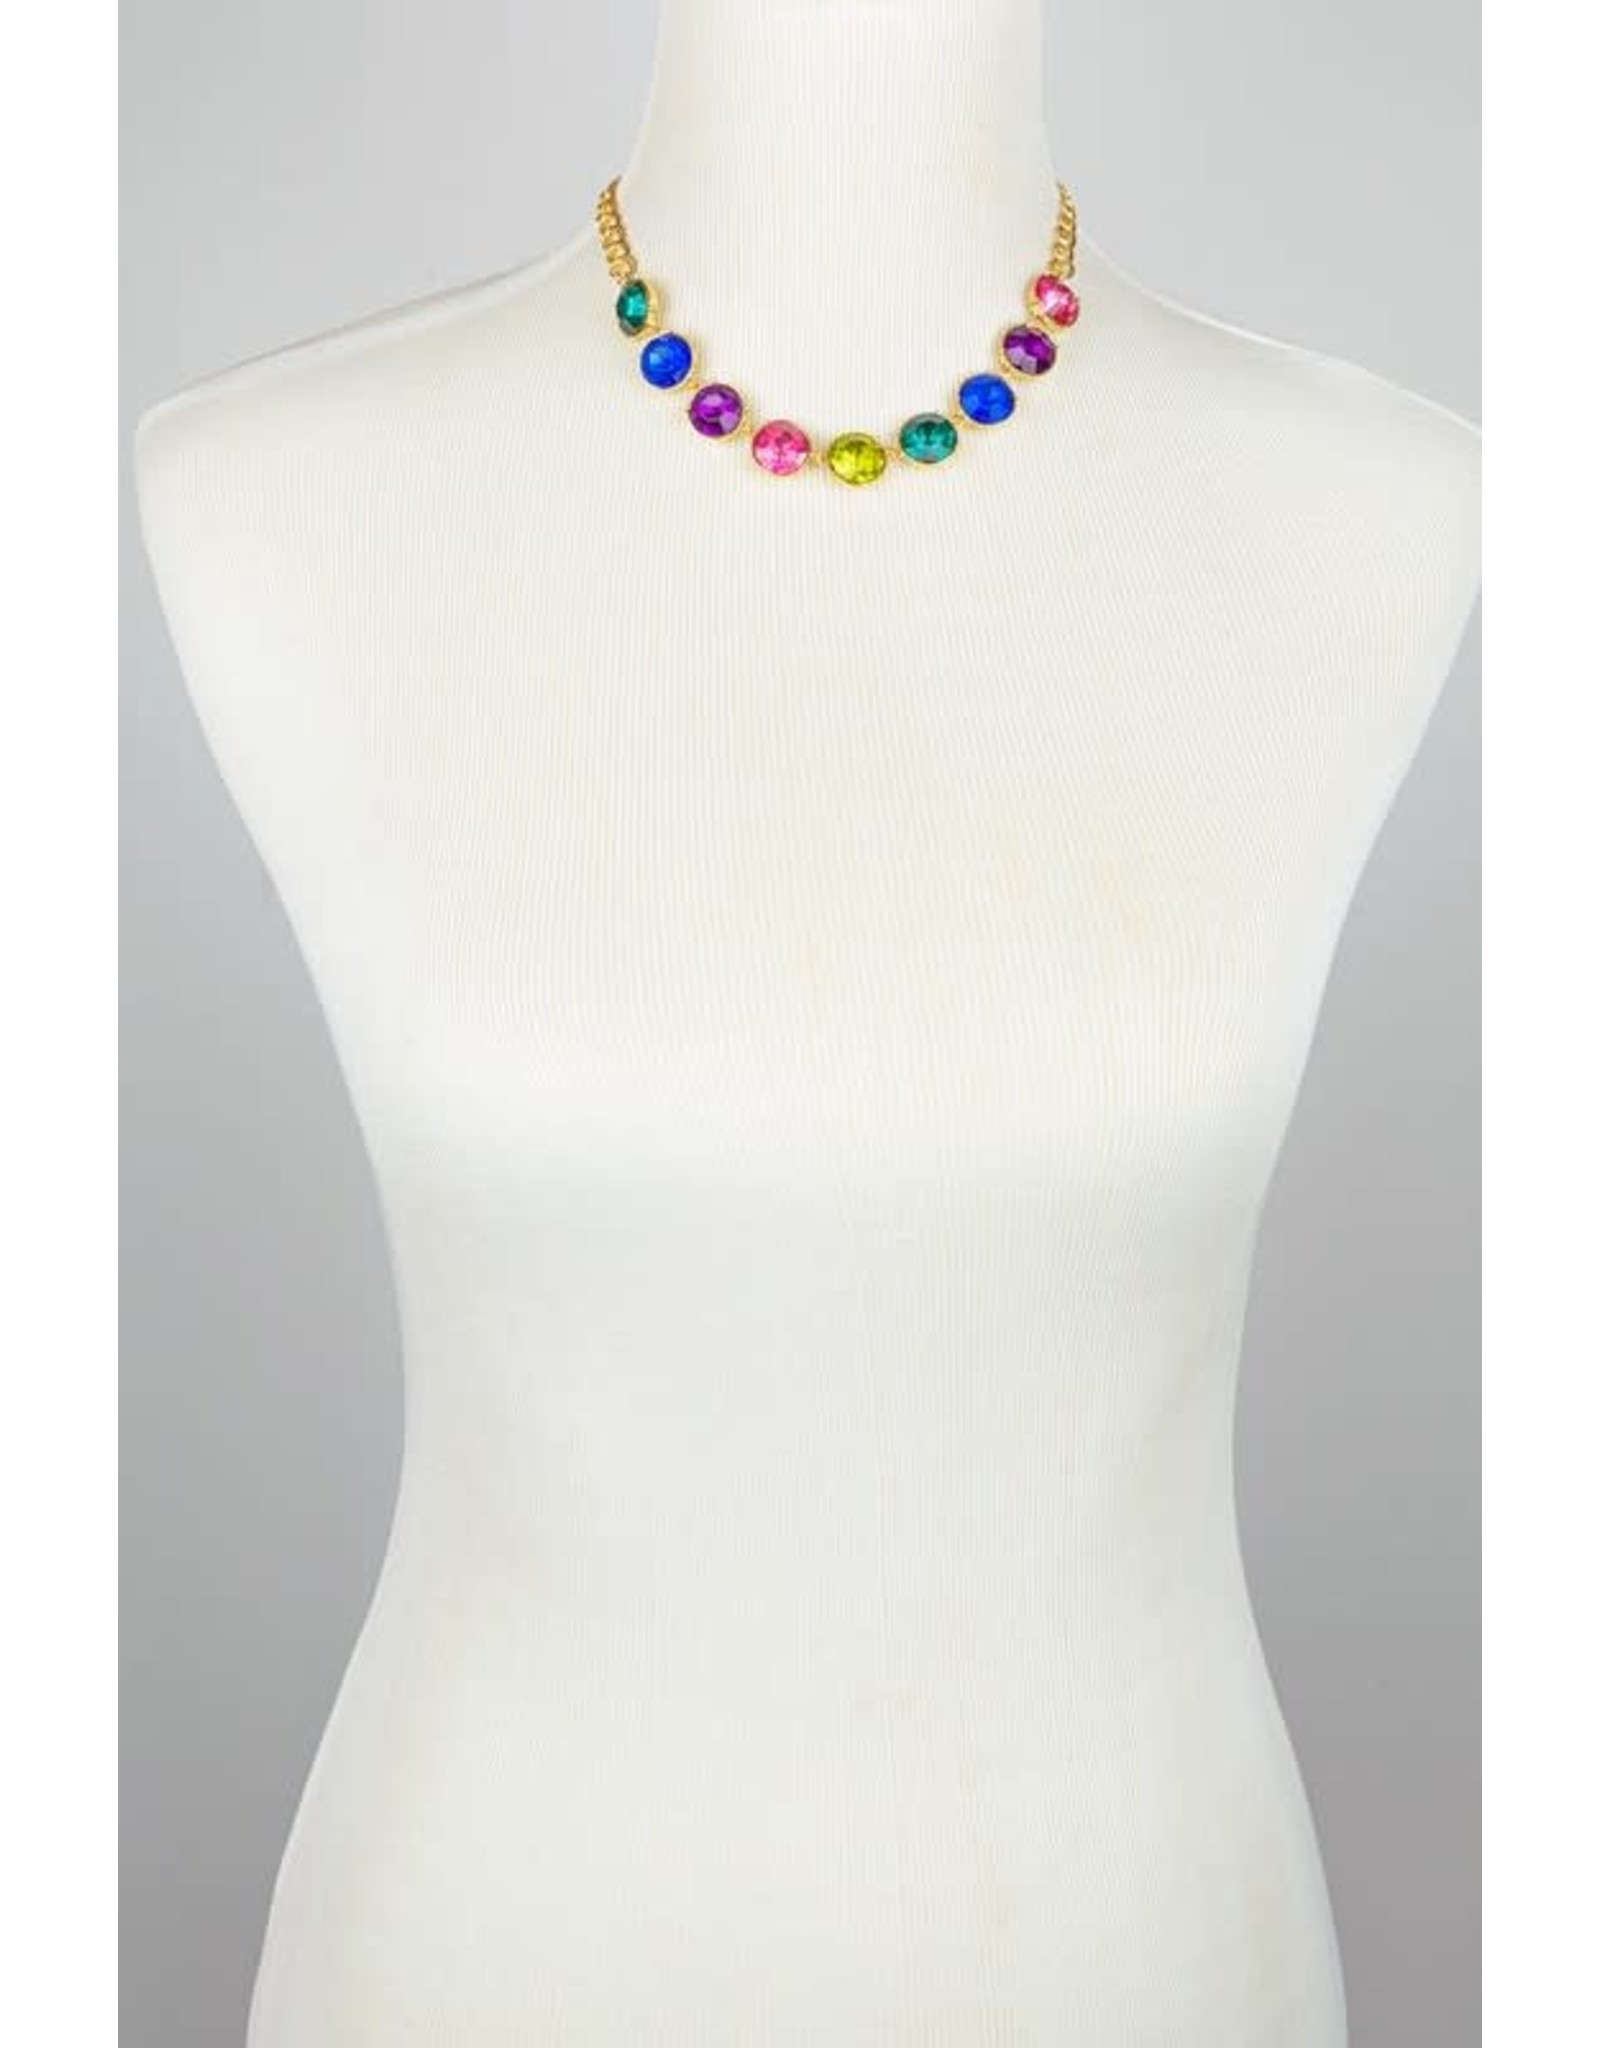 """Accentuate Your Ensemble With This Gemstone Station Necklace Fashioned With Resin Stones And A Goldtone Finish For An Eye-Catching Look.  Size: 16"""" Each Stone Is 5/8"""" Multi Color Resin Gem Stone Necklace"""